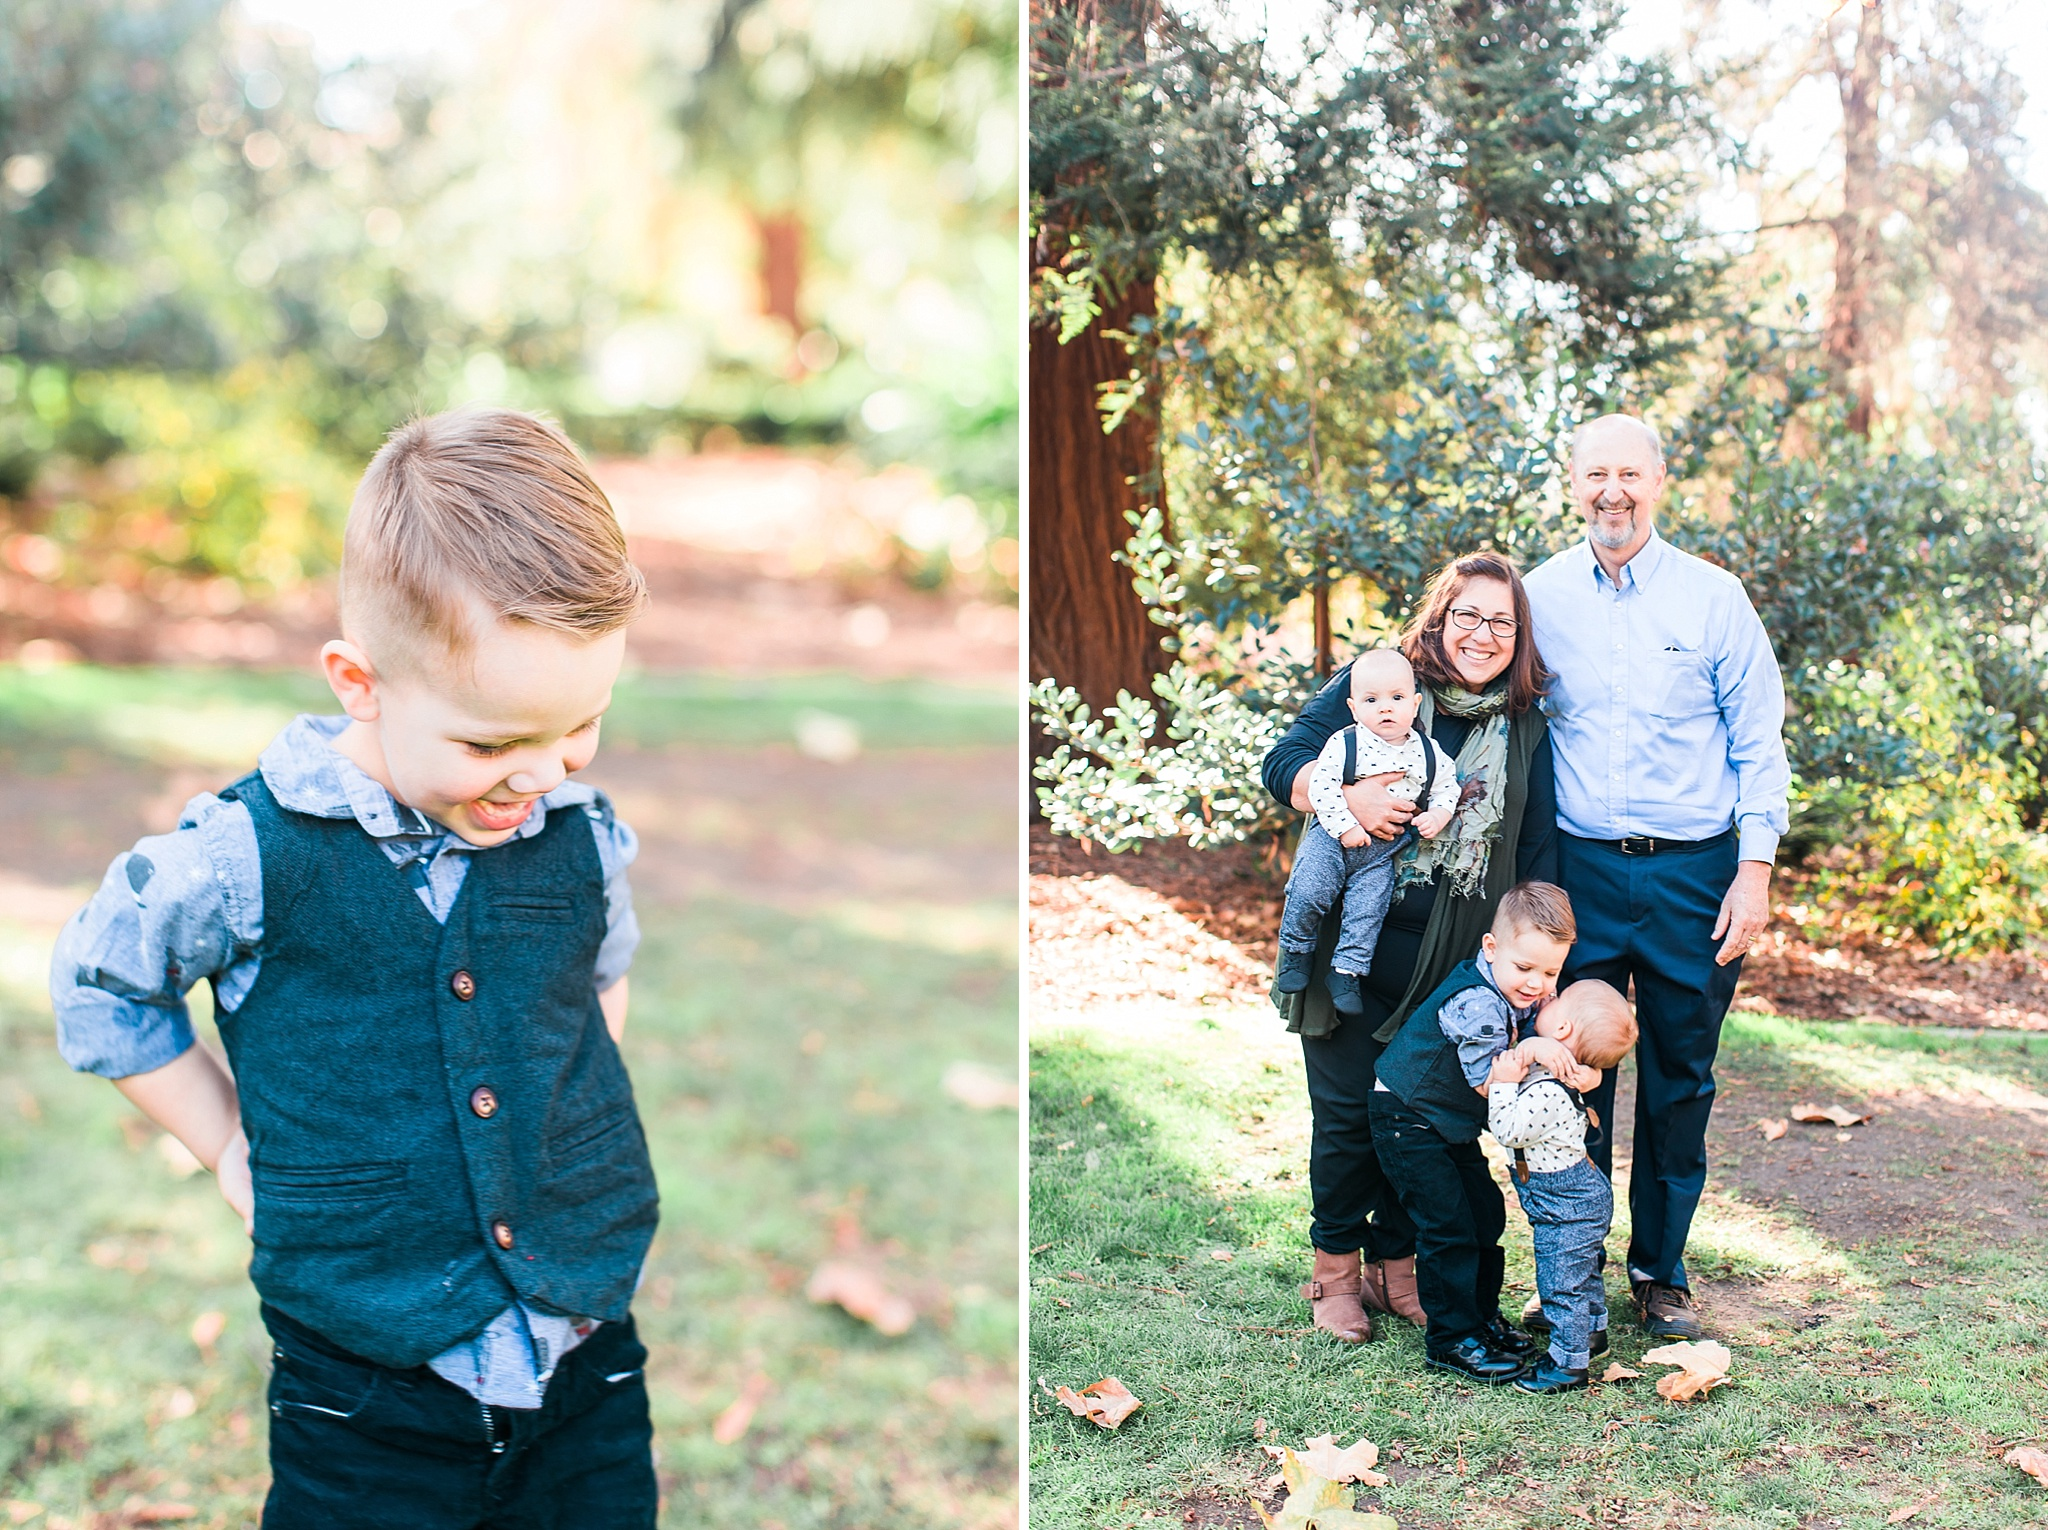 Claremont-Colleges-Family-Photos-7_WEB.jpg